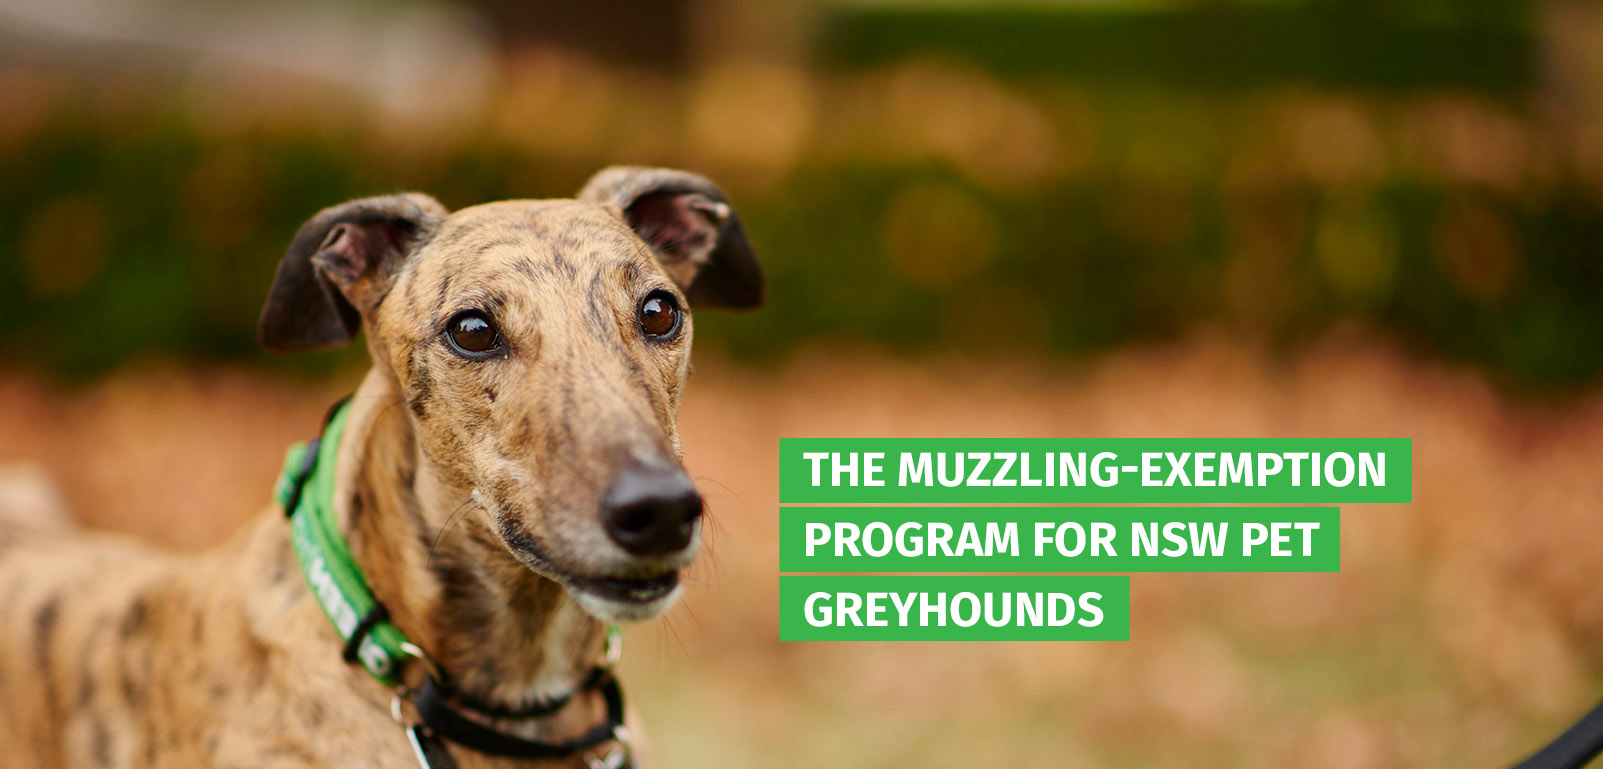 The muzzling-exemption program for NSW pet greyhounds